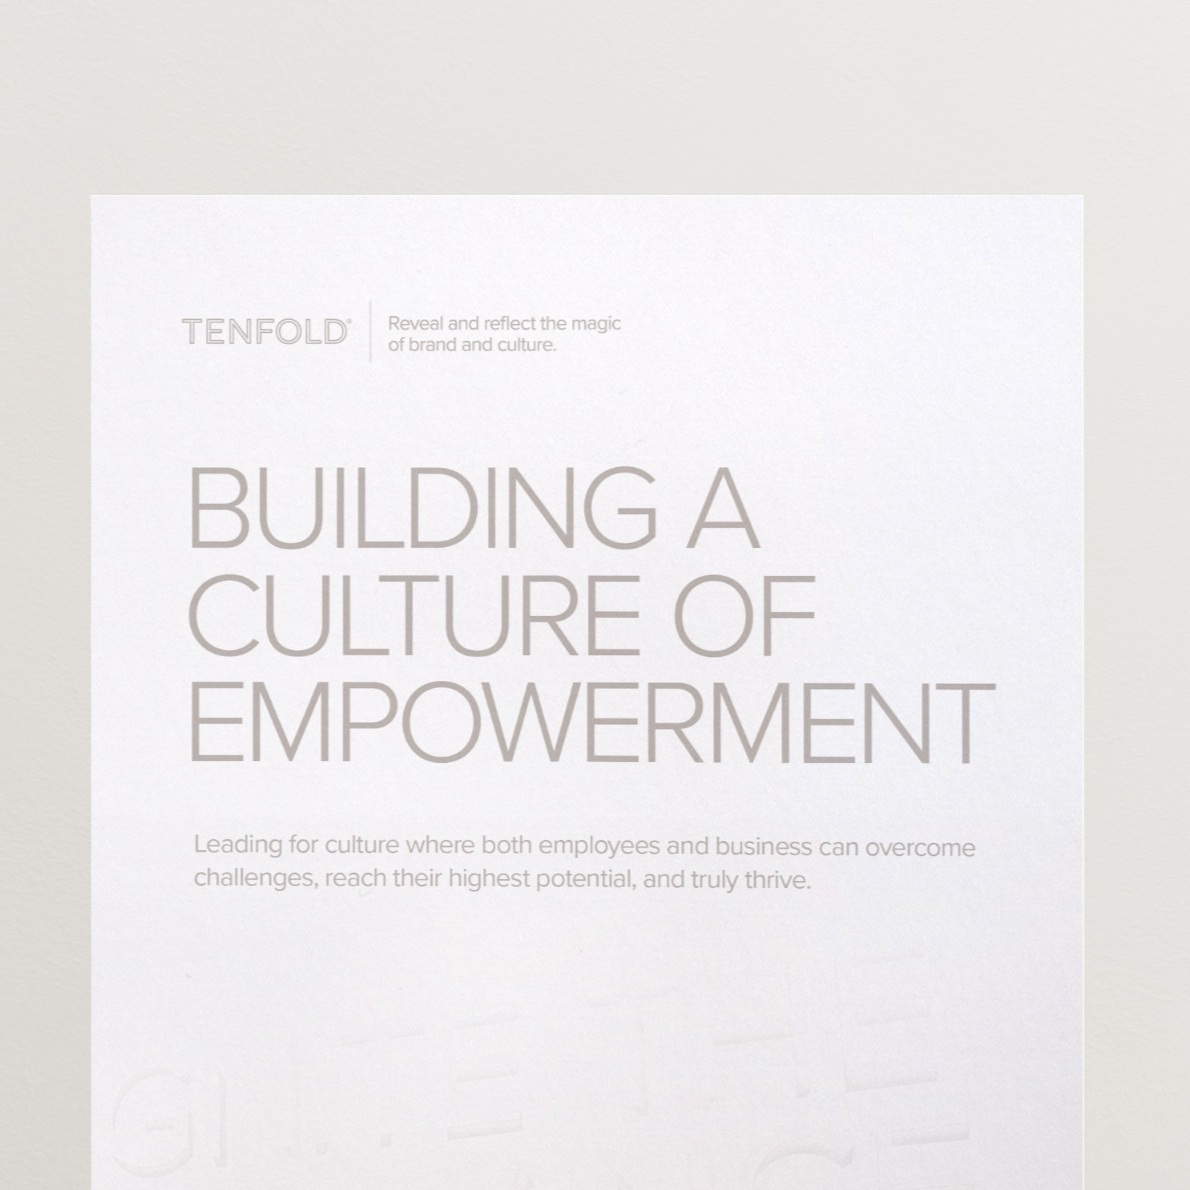 - Why Empowerment Culture is so hard to cultivate, and what to think about on your journey to empowerment.